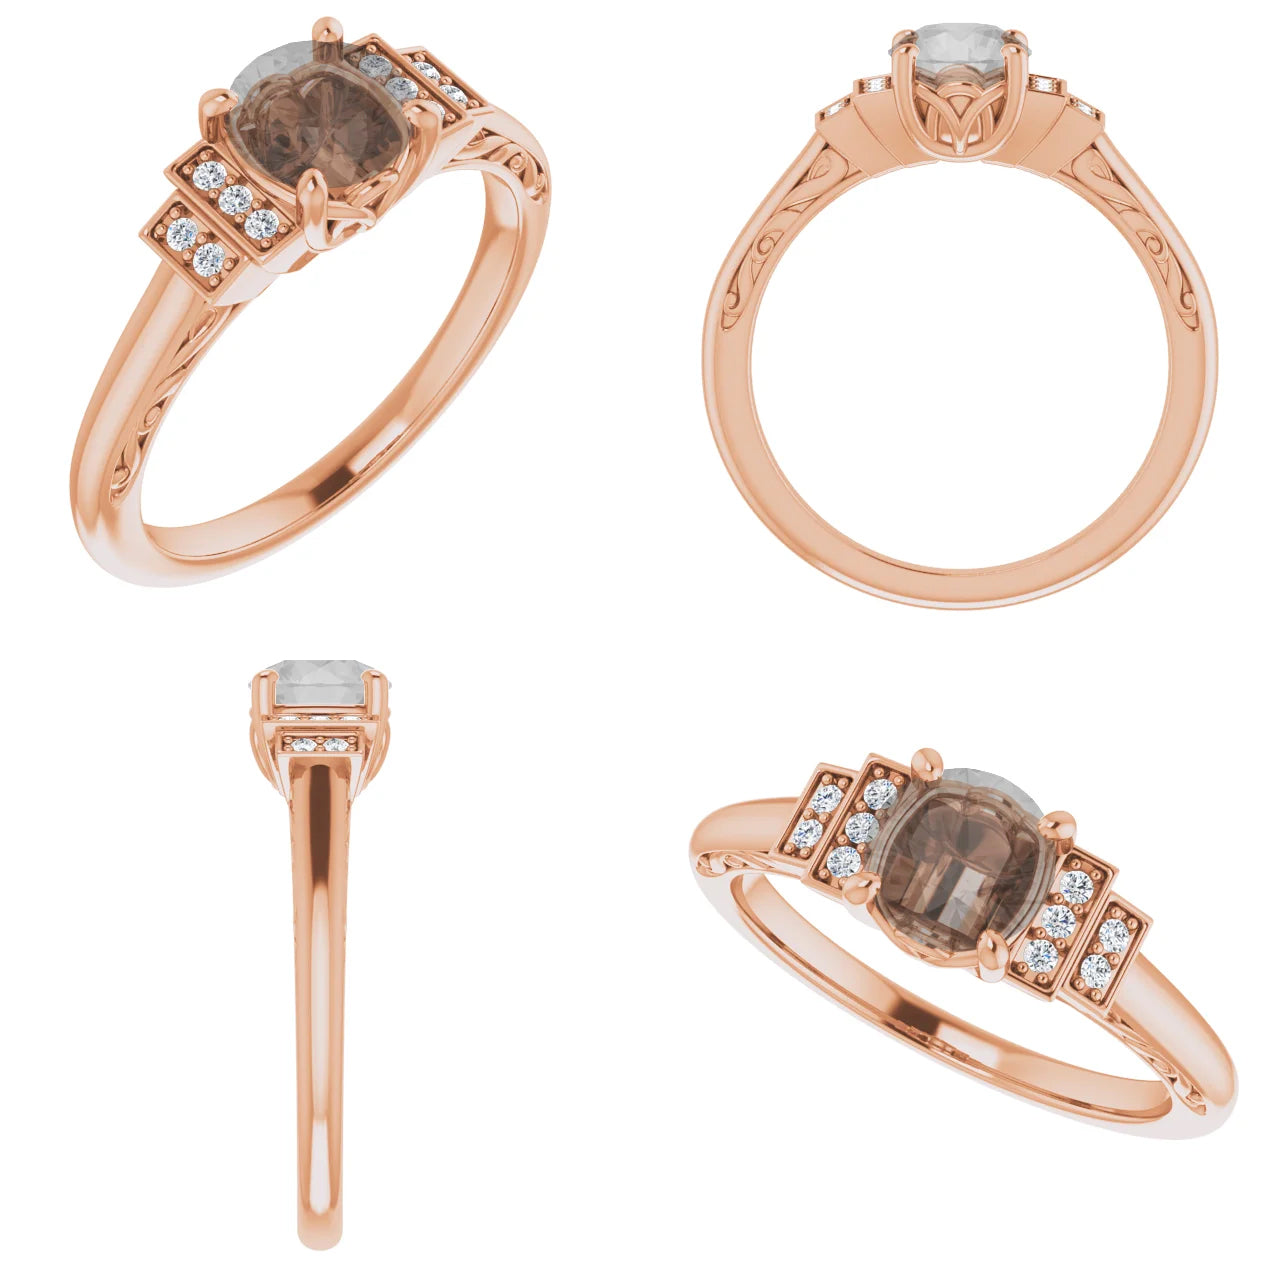 Isadora Setting - Salt & Pepper Celestial Diamond Engagement Rings and Wedding Bands  by Midwinter Co.